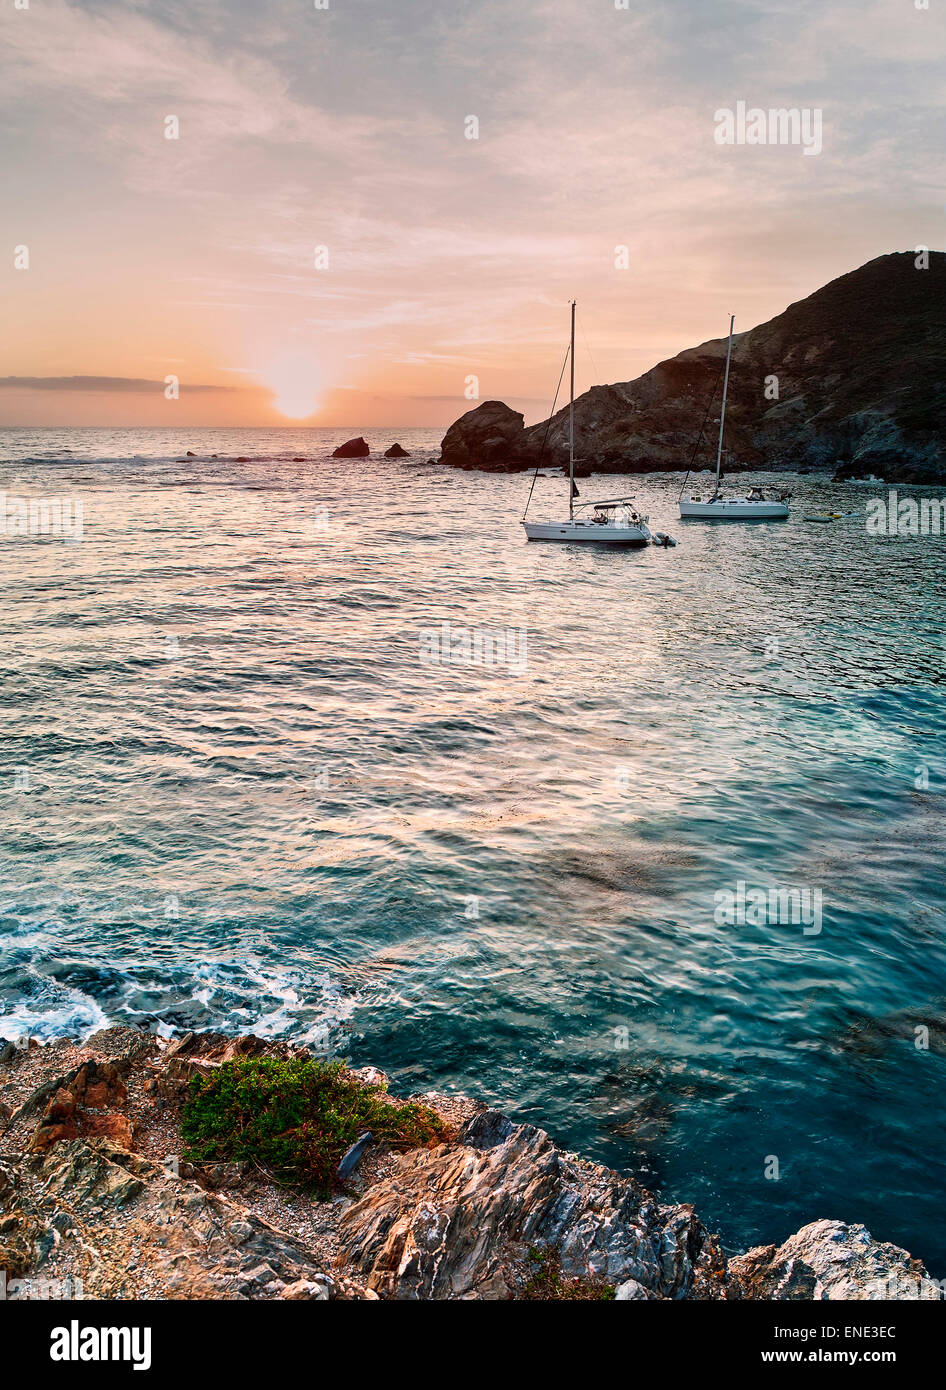 Two sailboats anchored at  cove called Little Harbor on Catalina Island at sunset. - Stock Image